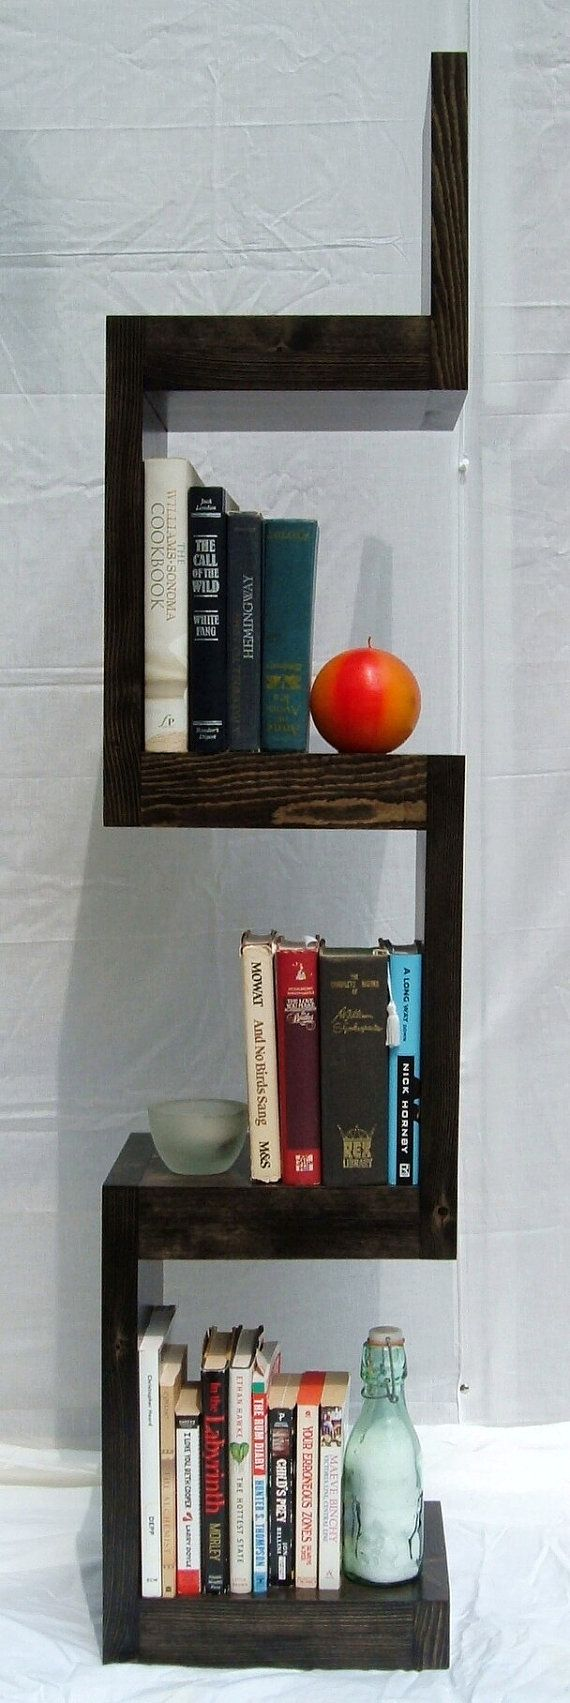 another bookshelf idea - Storyline Bookshelf